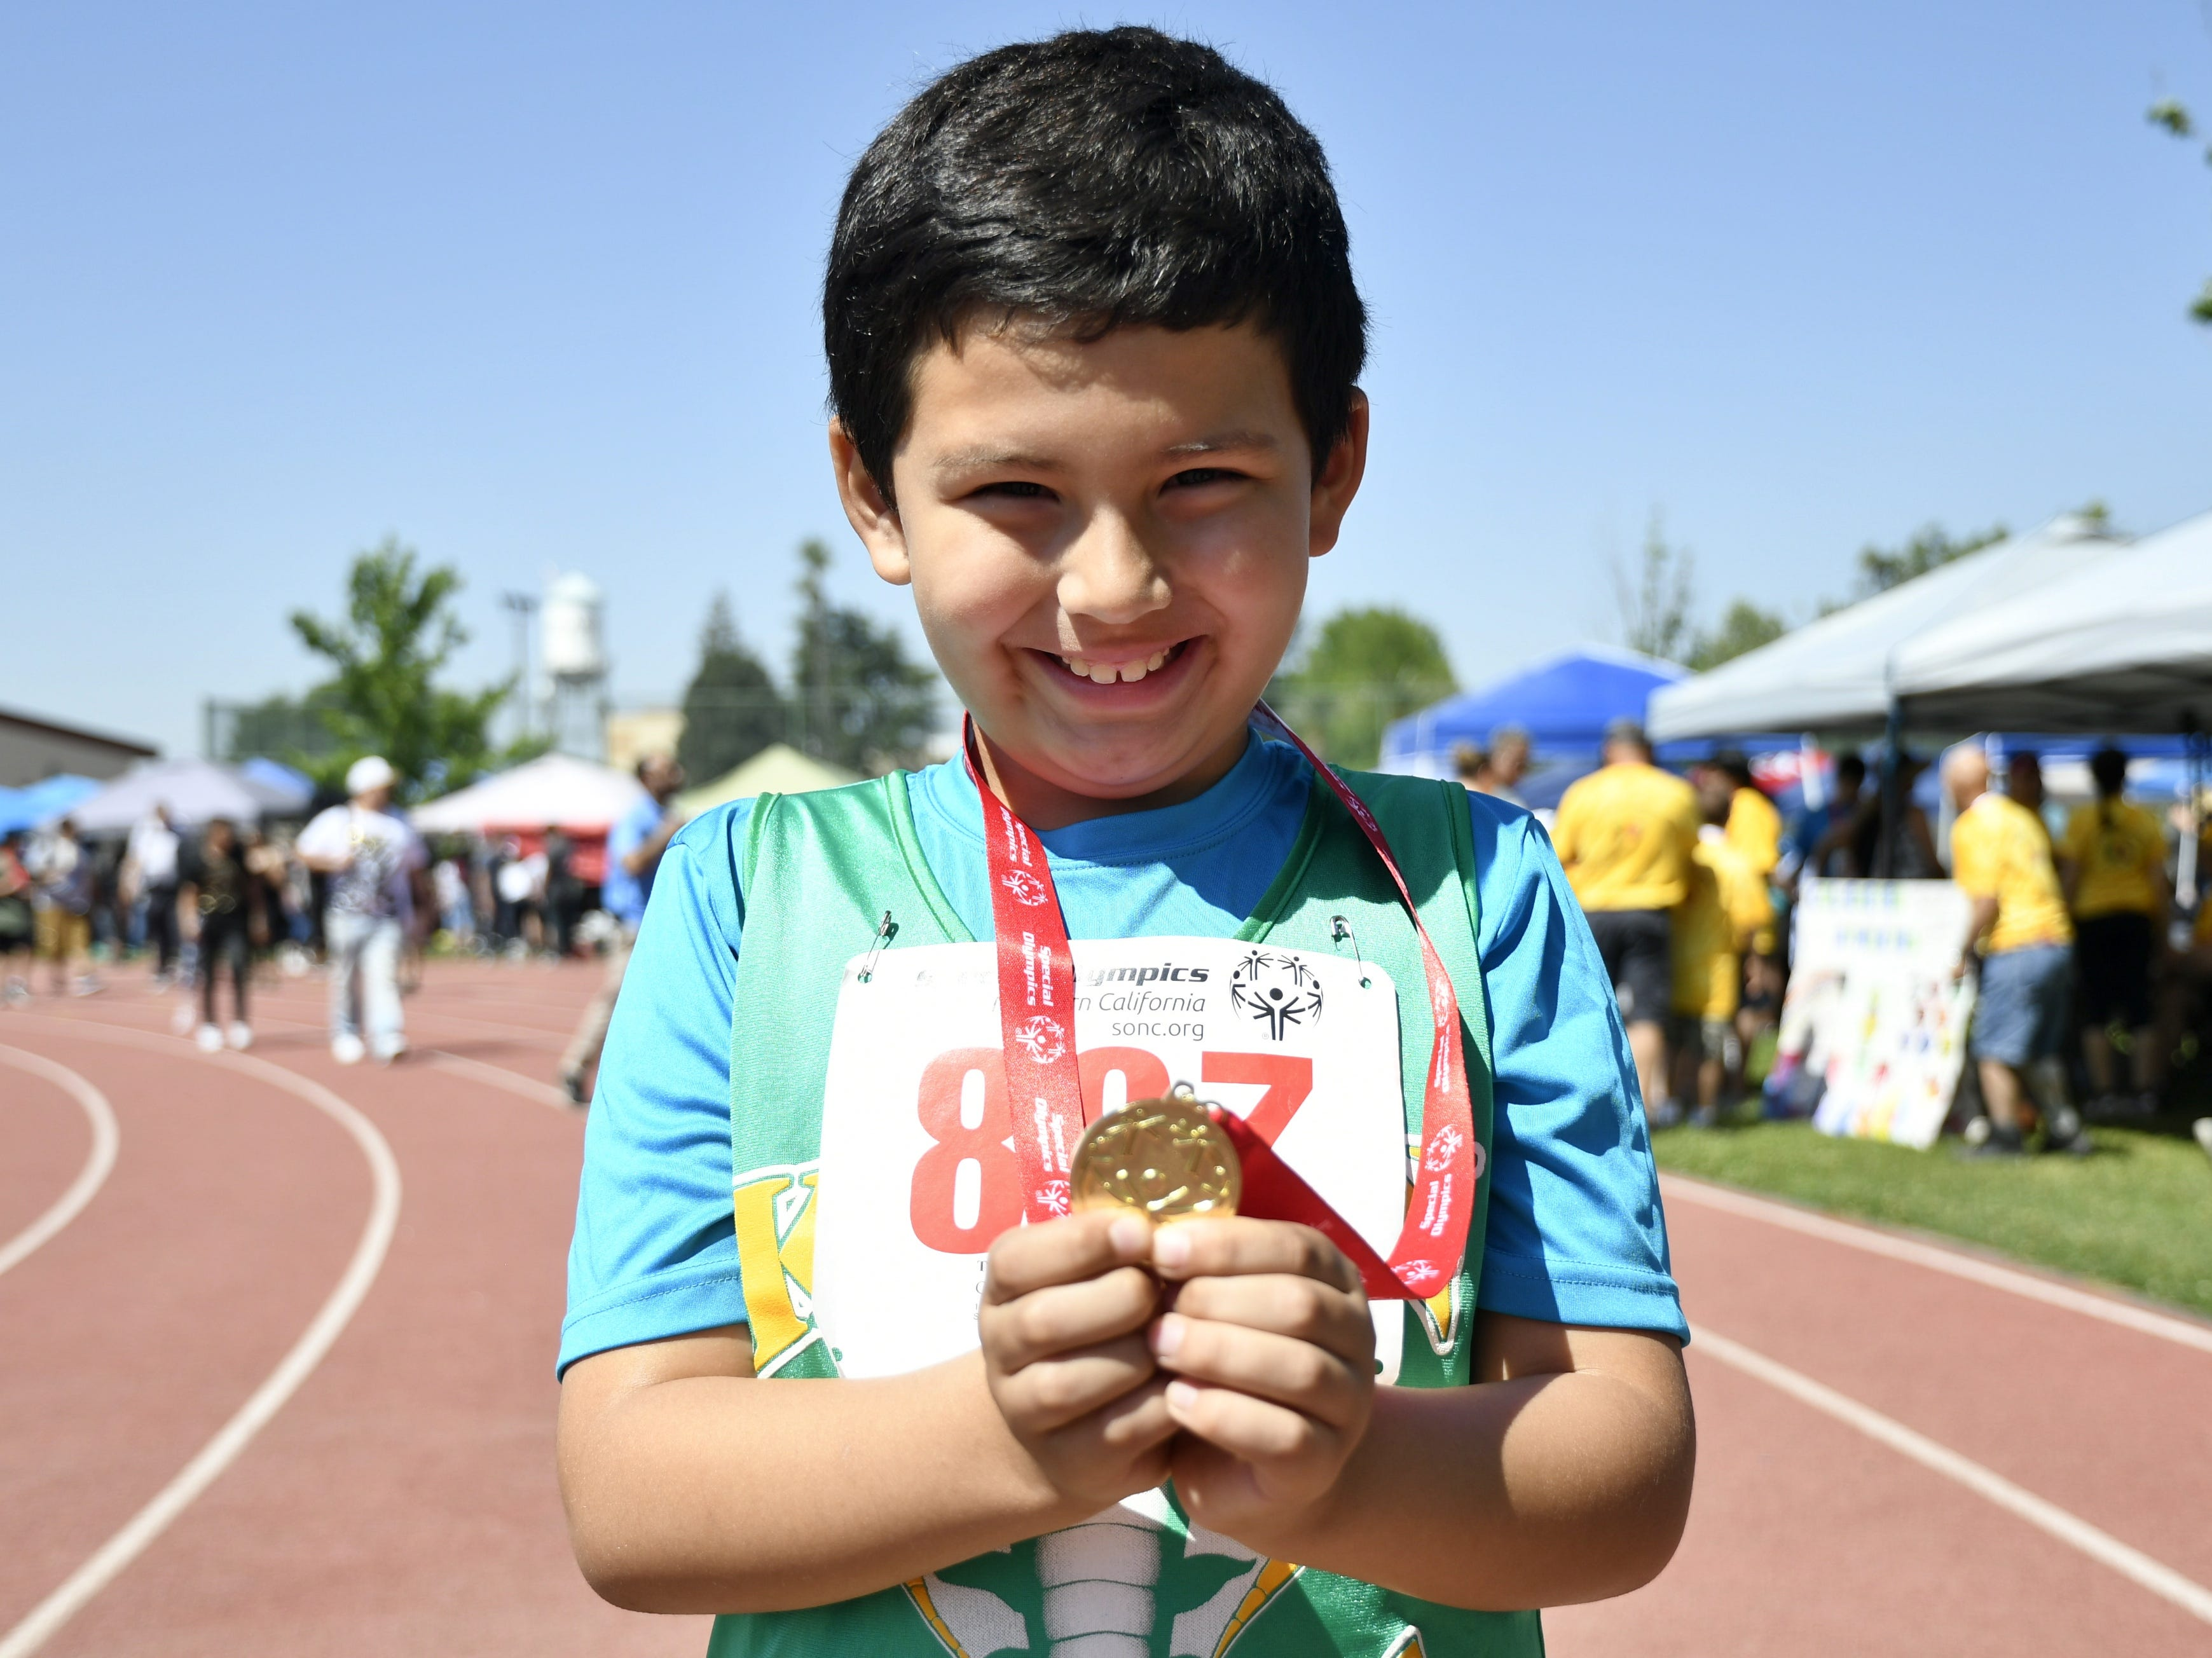 Kohn Elementary student Drew Gamez, 8, shows off his gold medal at the 2019 Tulare County Special Olympics at Bob Mathias Stadium on Friday, April 26, 2019.